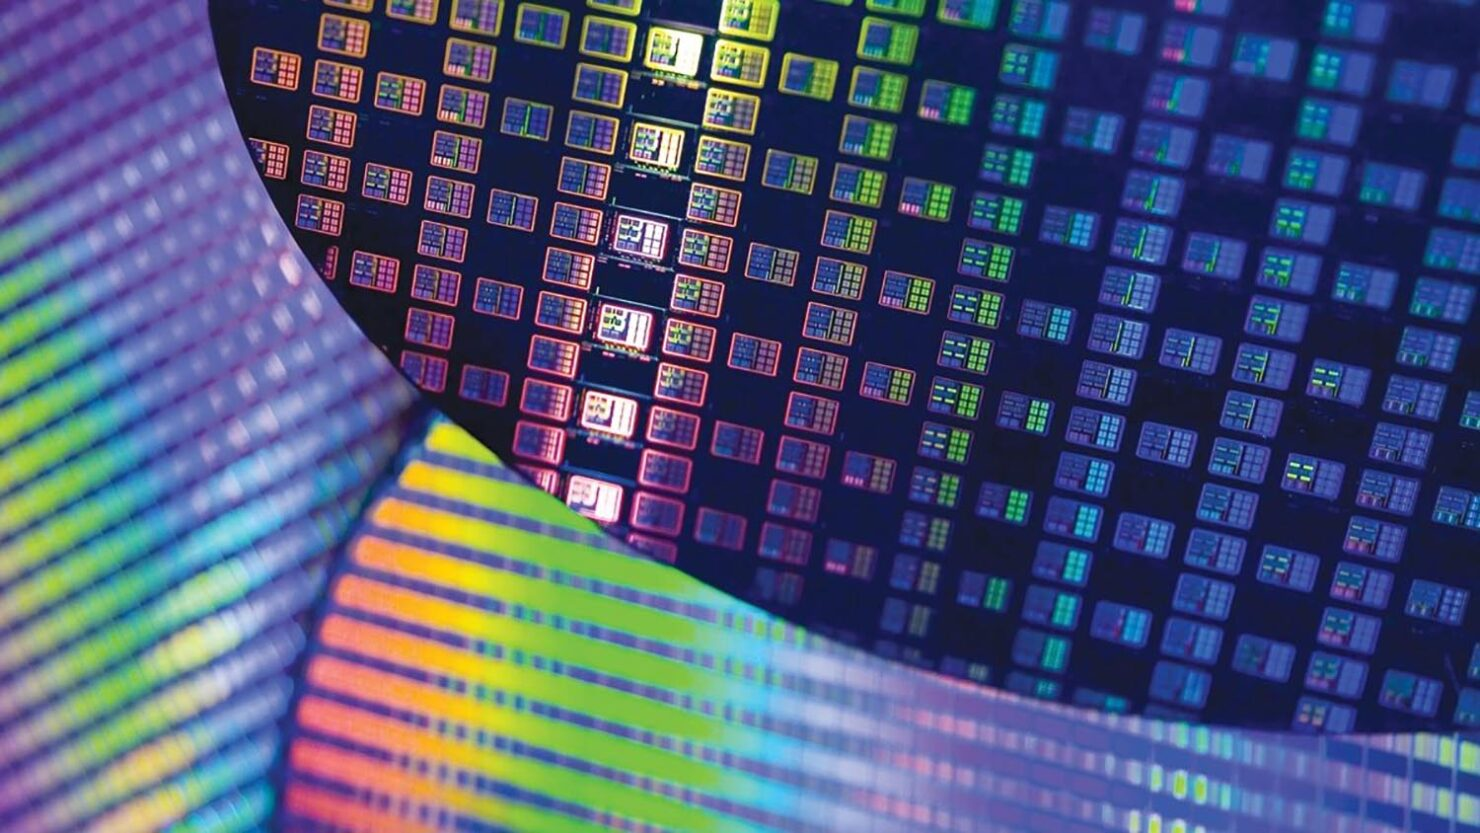 TSMC Has Reportedly Secured Orders for Its 2nm Node - Samsung May Not Beat Its Foundry Rival Until 2030, Claims New Report